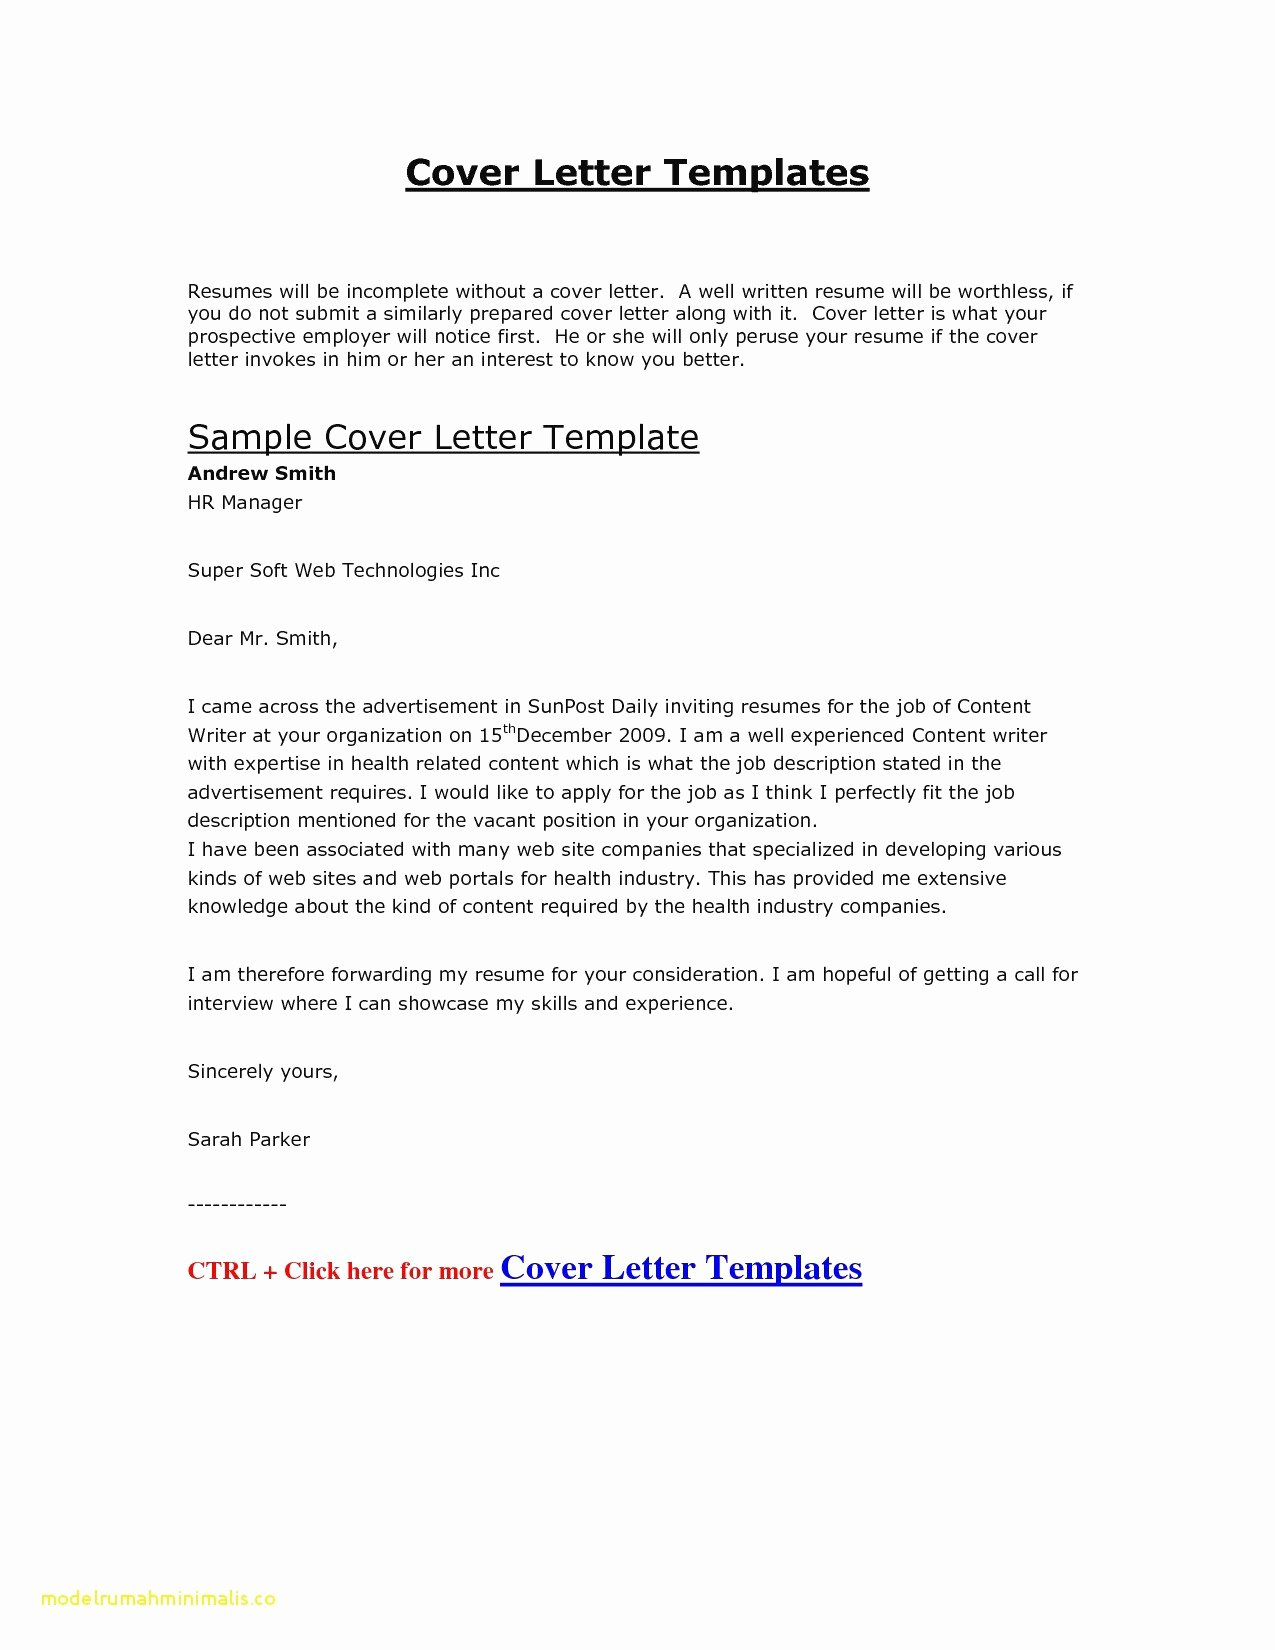 Google Docs Letter Template Unique Google Docs Christmas Letter Template Collection